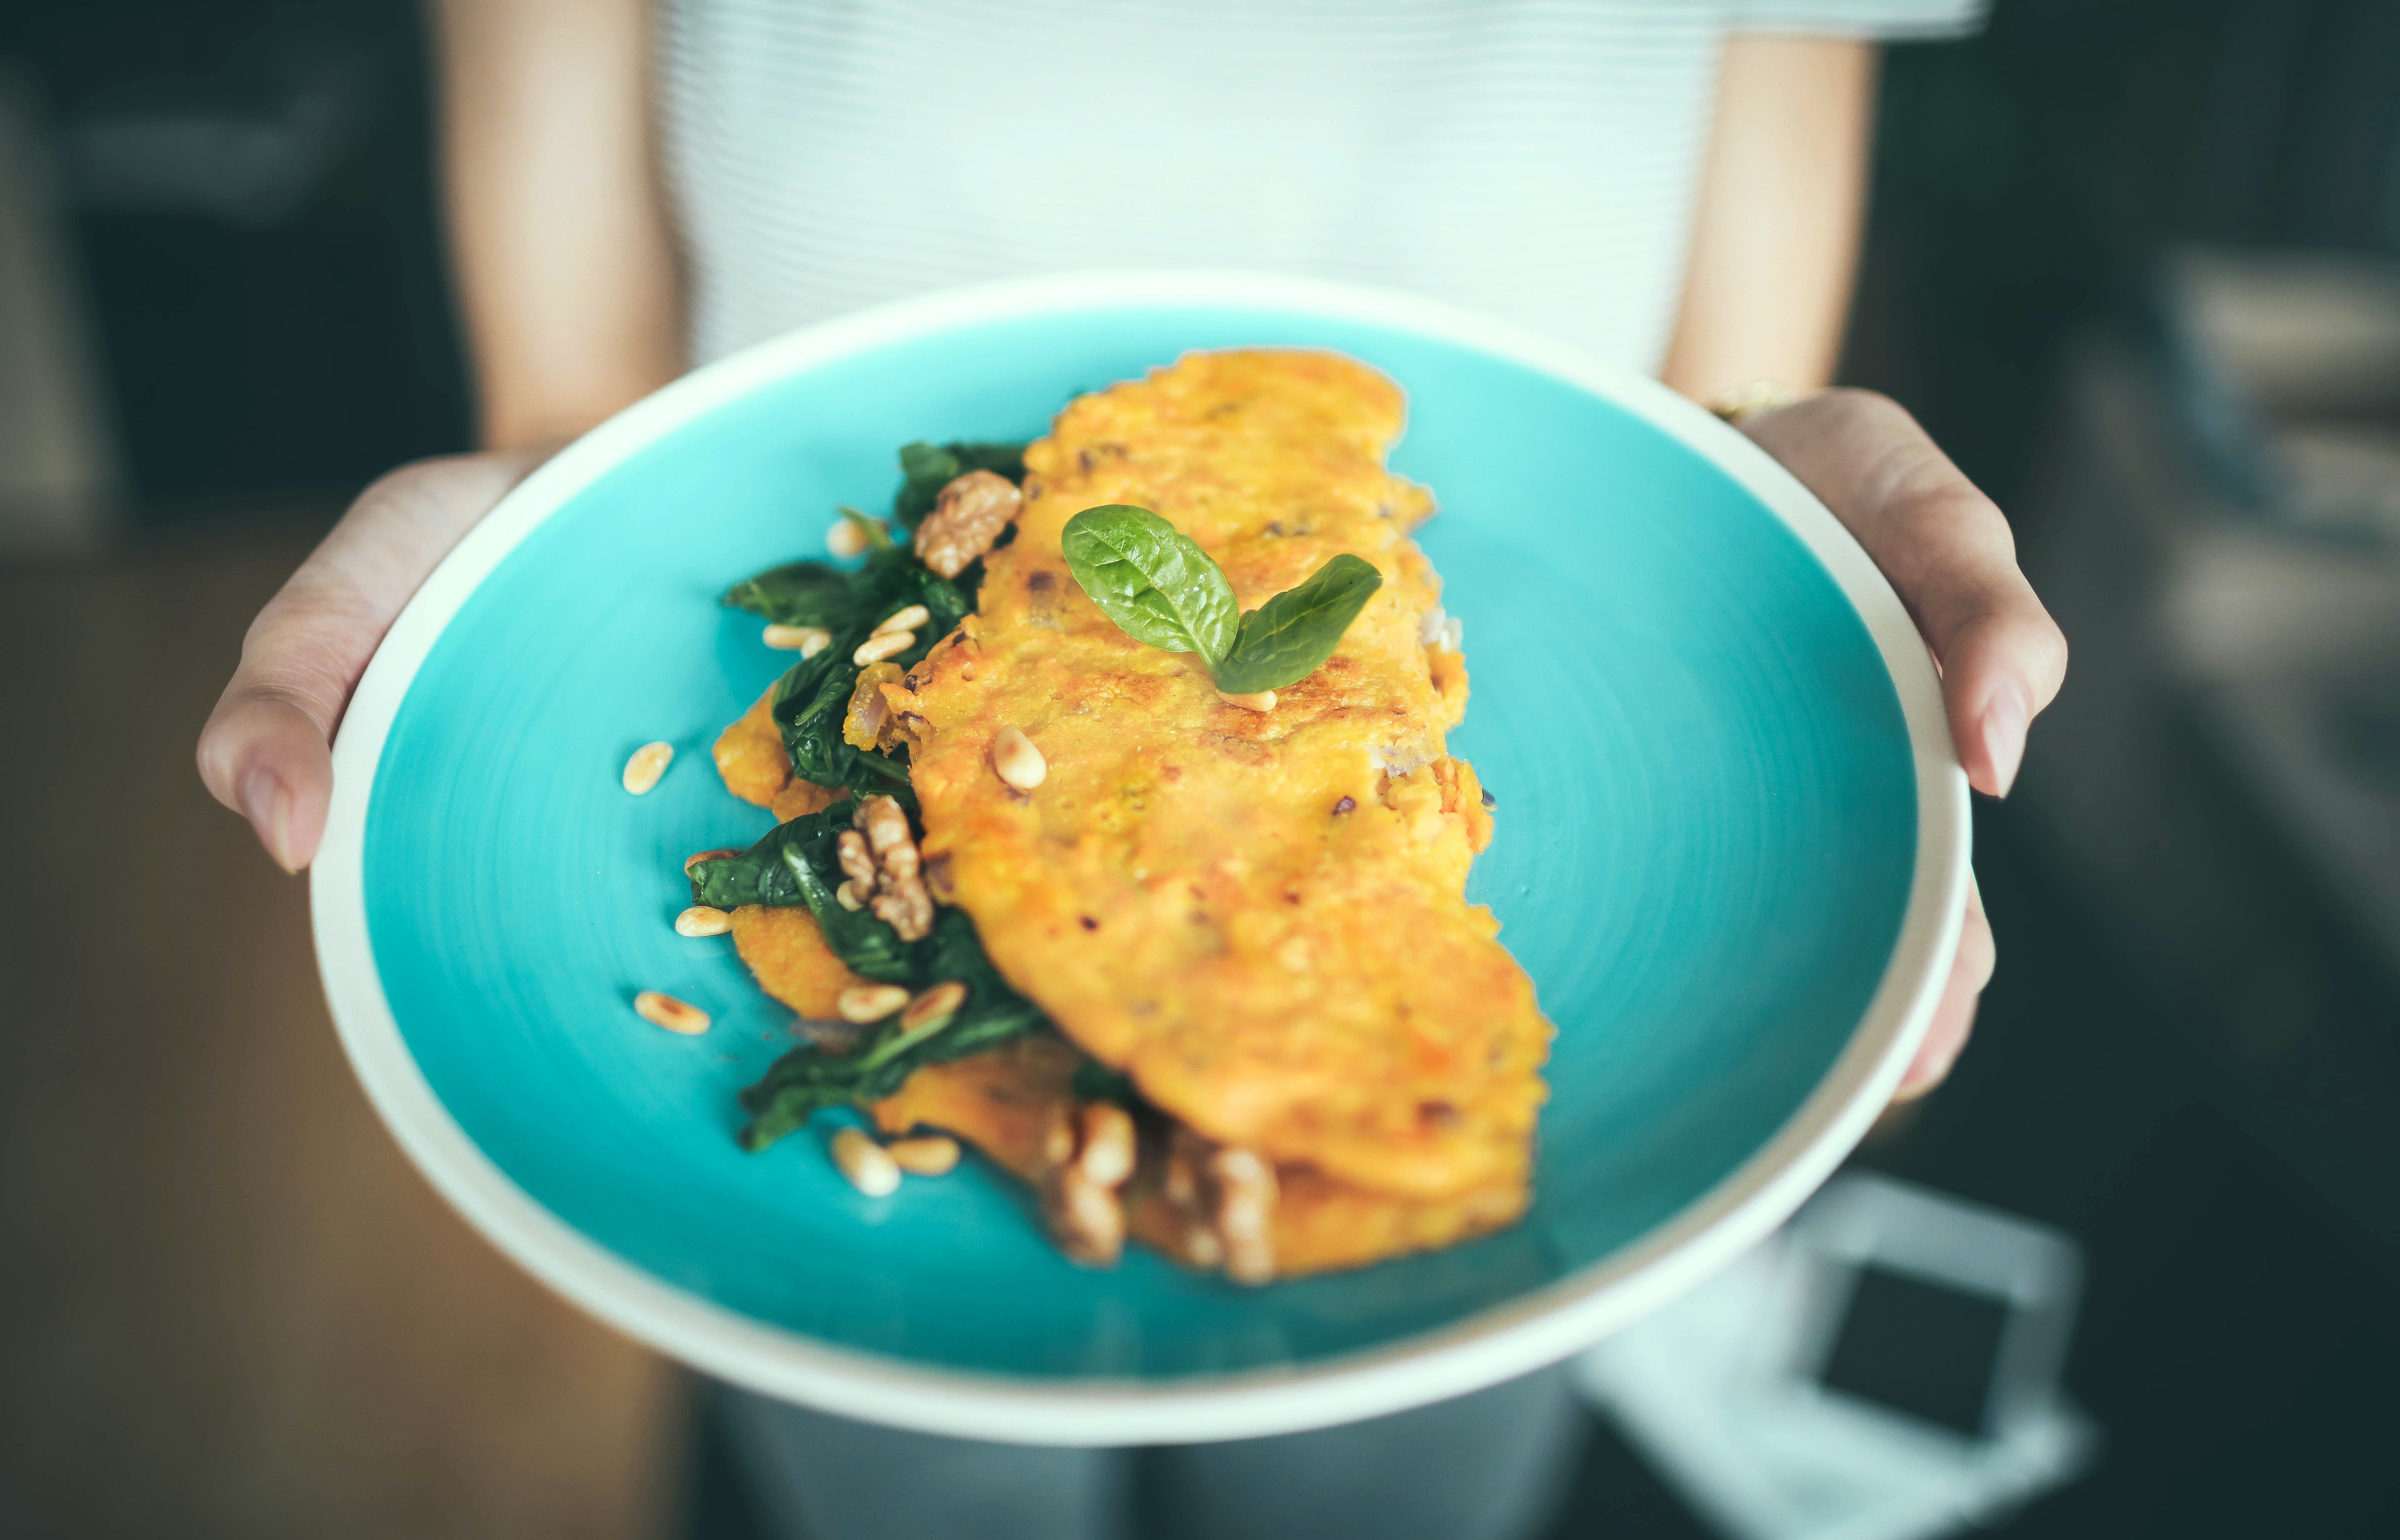 Woman holding an aquamarine plate with an omelette on it garnished with herbs